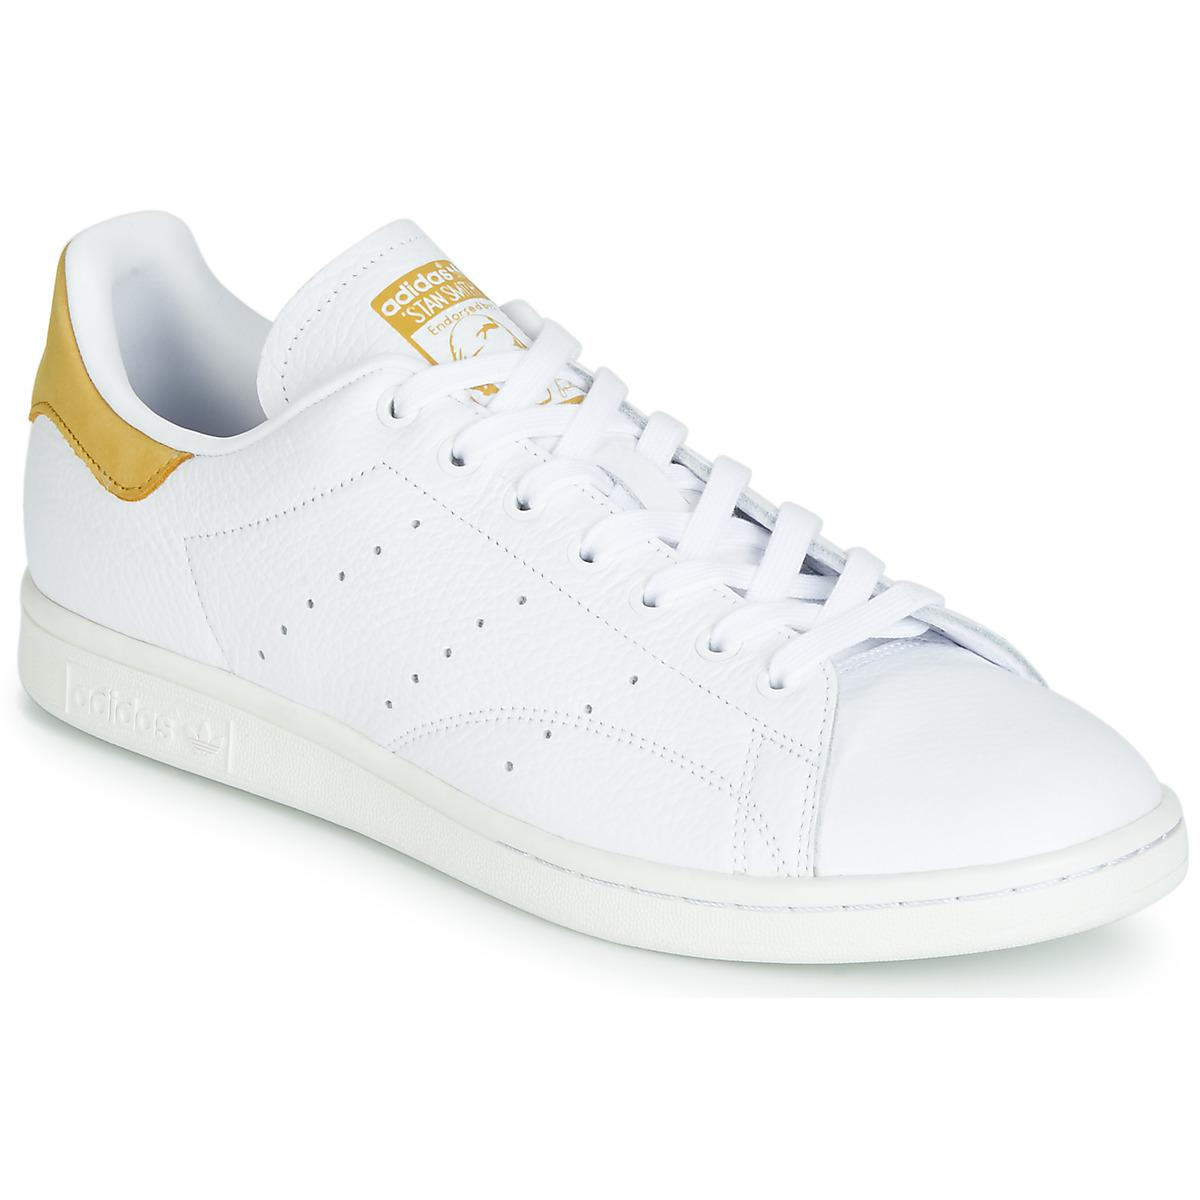 c860a878a398d6 adidas Stan Smith Women s Shoes (trainers) In White in White - Lyst